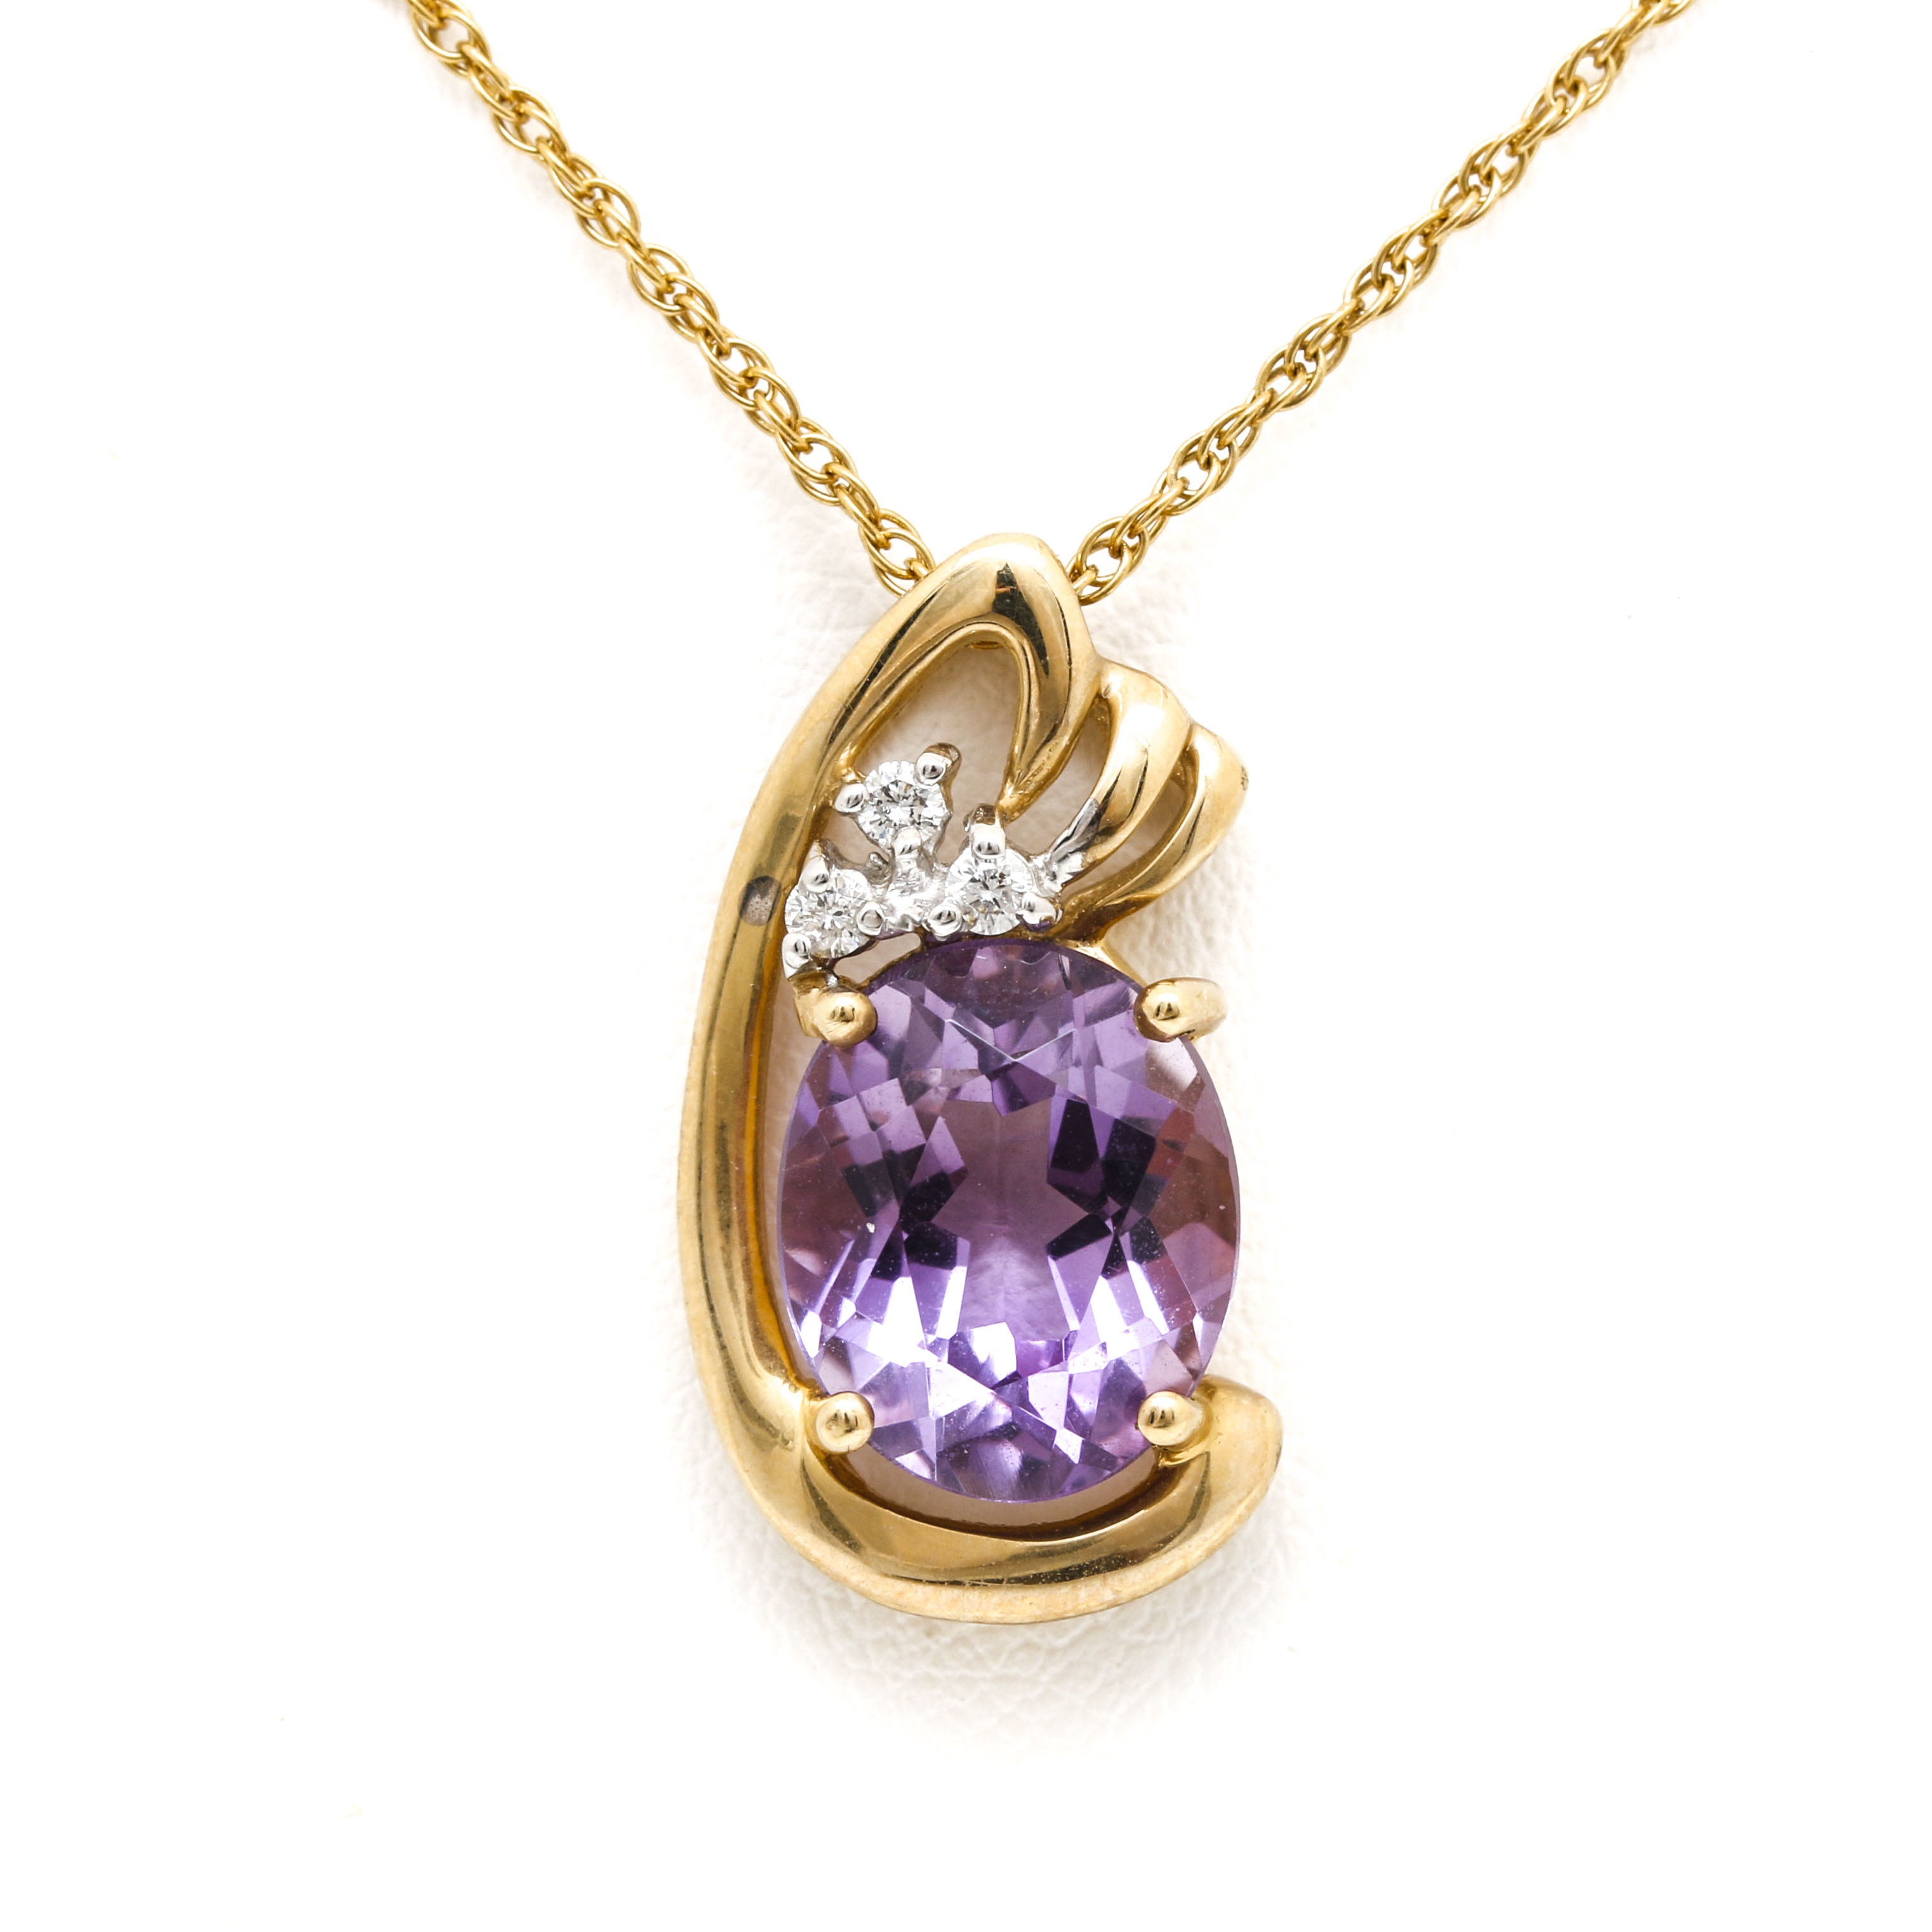 14K Yellow Gold 3.40 CT Amethyst and Diamond Pendant Necklace